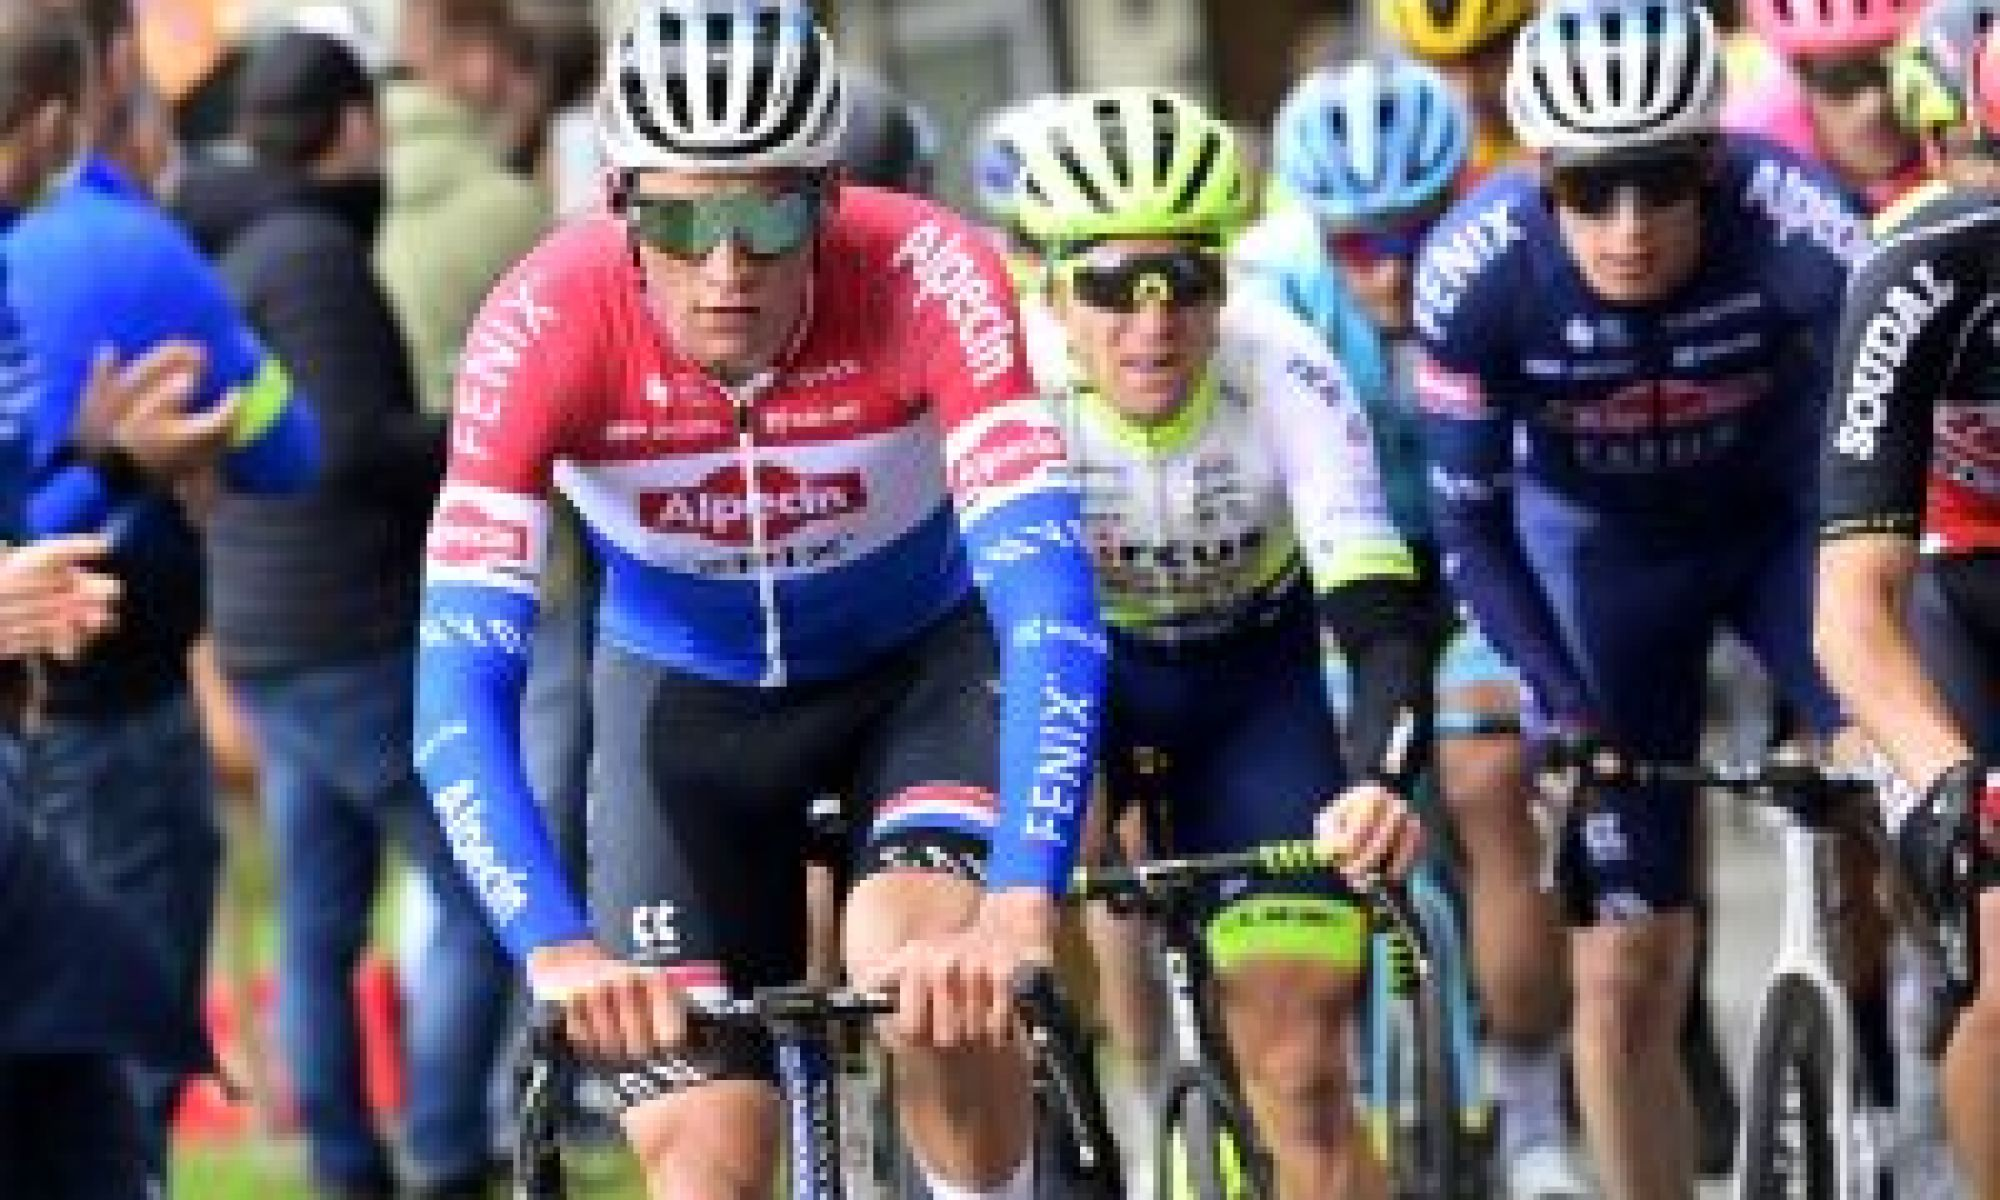 <div>Mathieu van der Poel ahead of cobbled Classics: 'I'll try and do my best everywhere and hopefully win'</div>